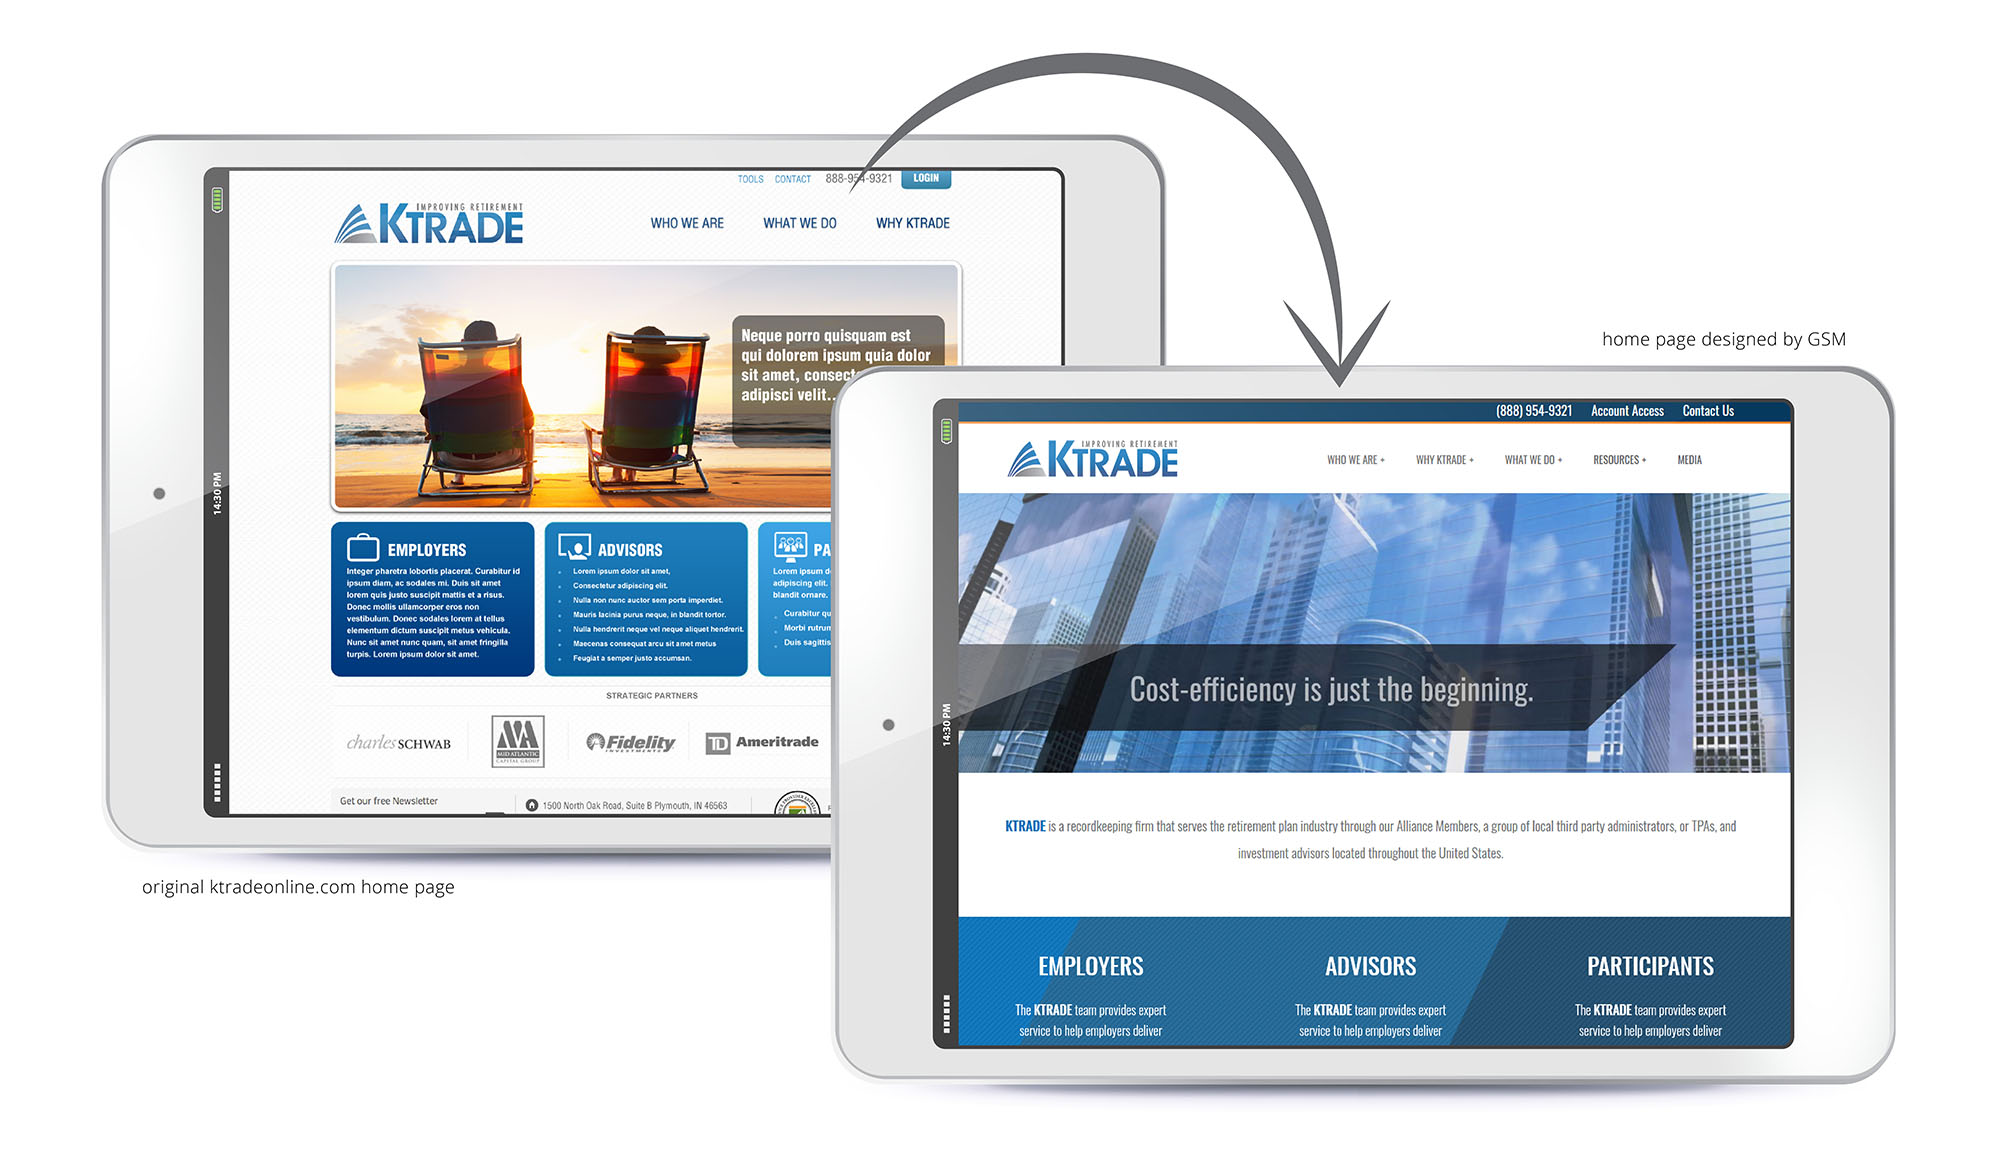 KTrade before-and-after website redesign